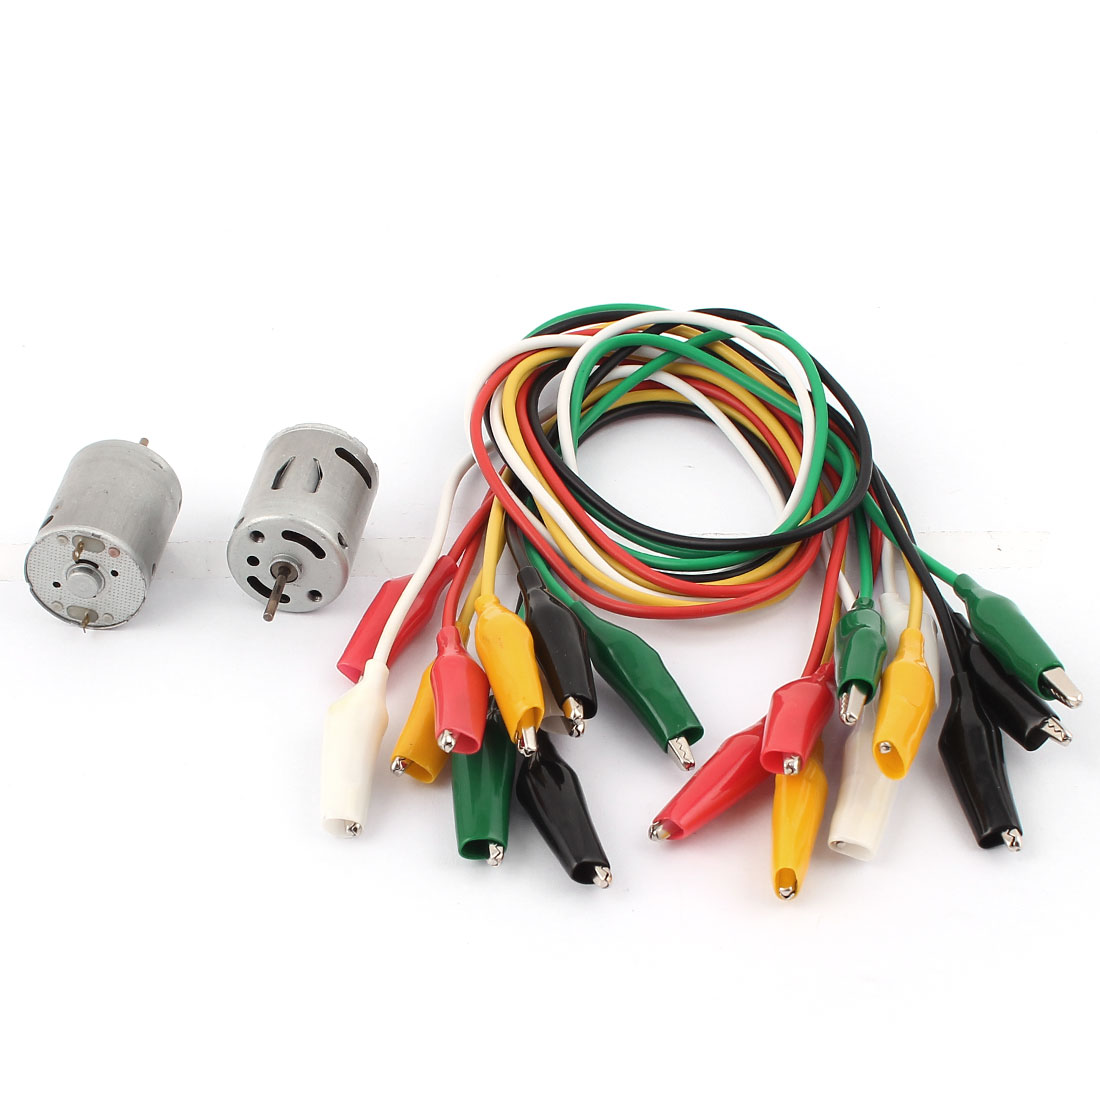 2Pcs DC 3V 5000RPM Toy Motor w 10Pcs Double-end Alligator Clips Test Work Jumper Wire